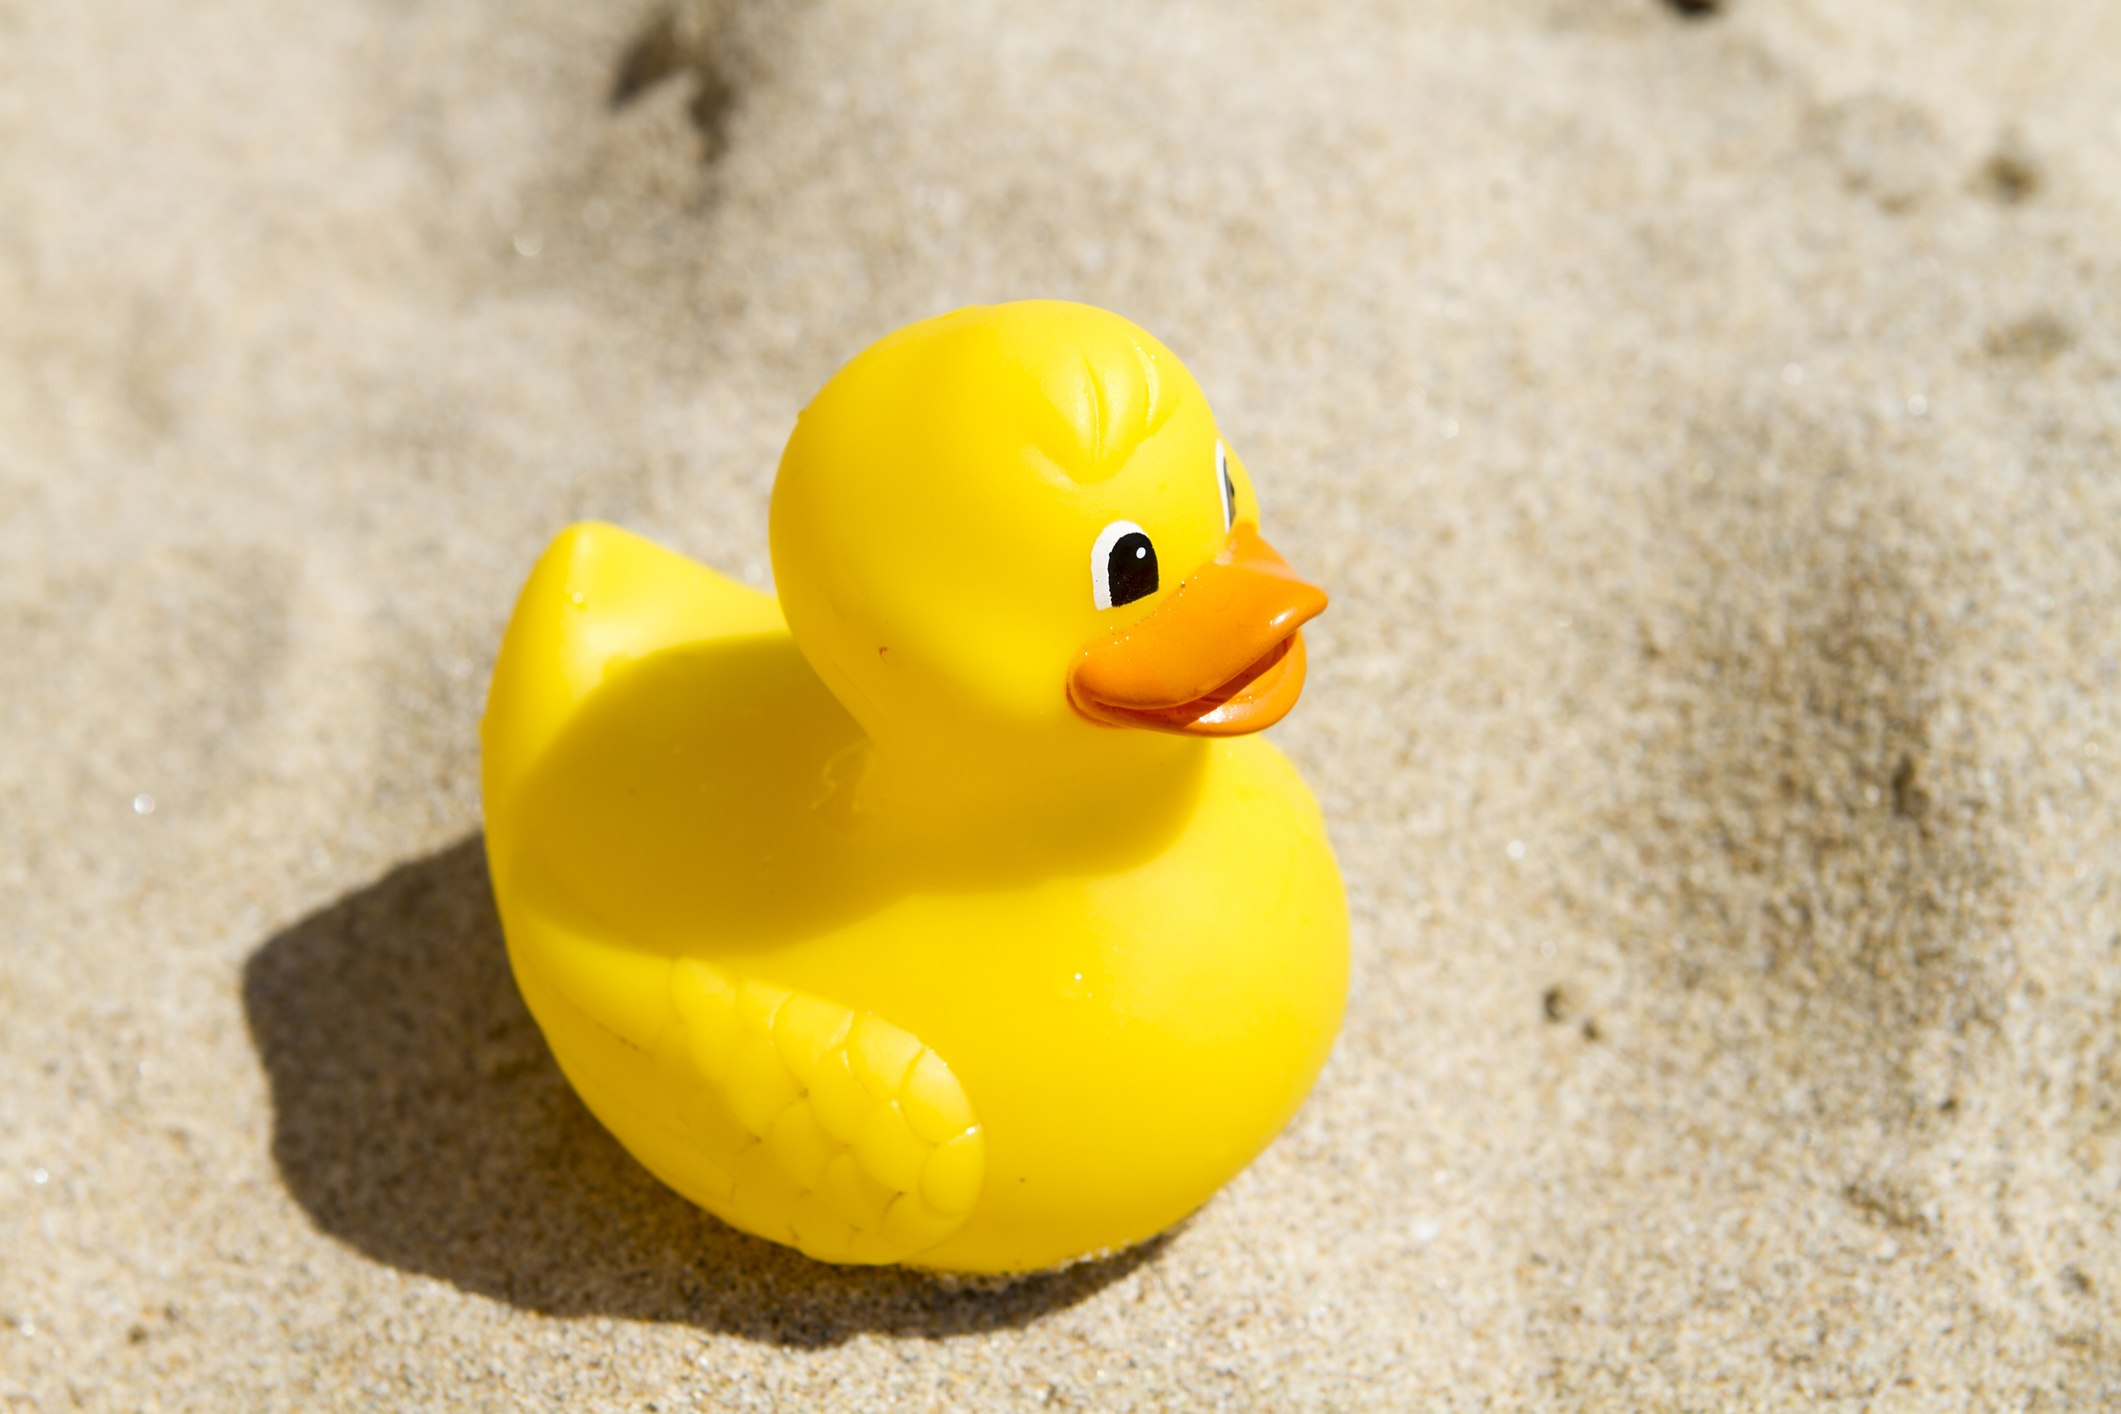 Yellow plastic toy duck in the sand